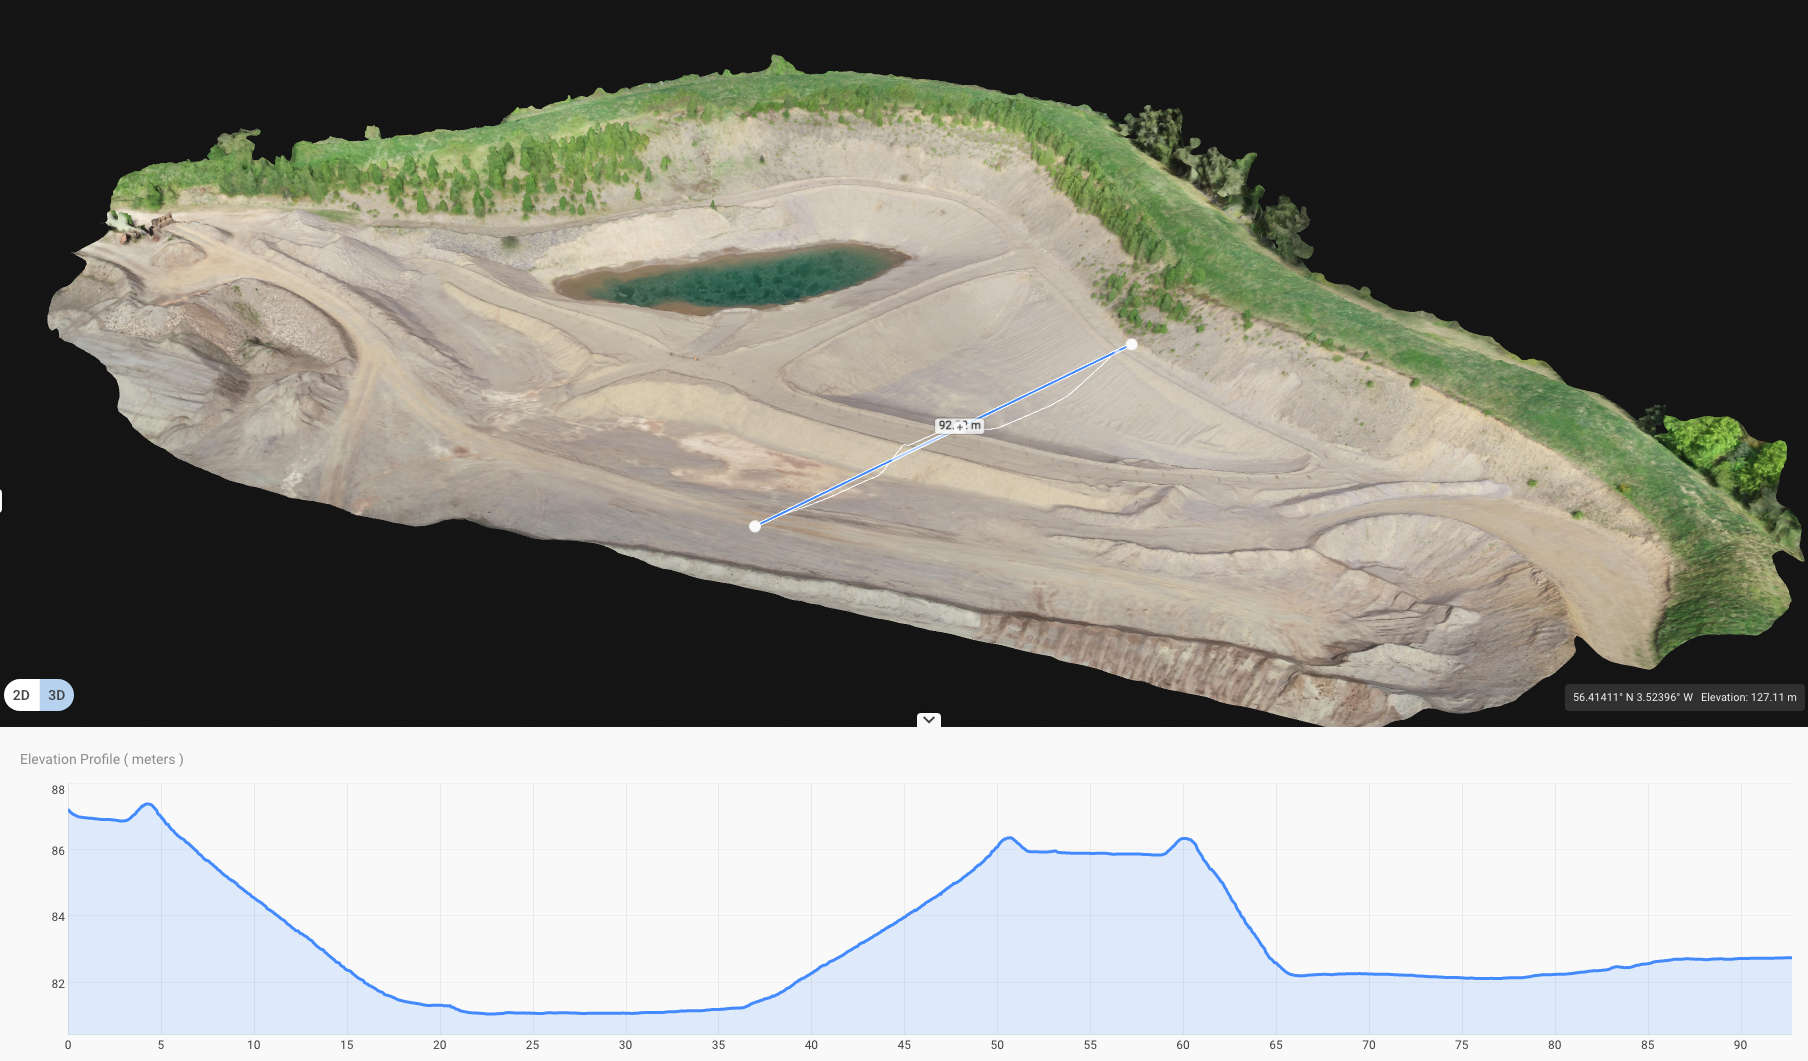 a 3D model of a quarry showing a selected elevation profile